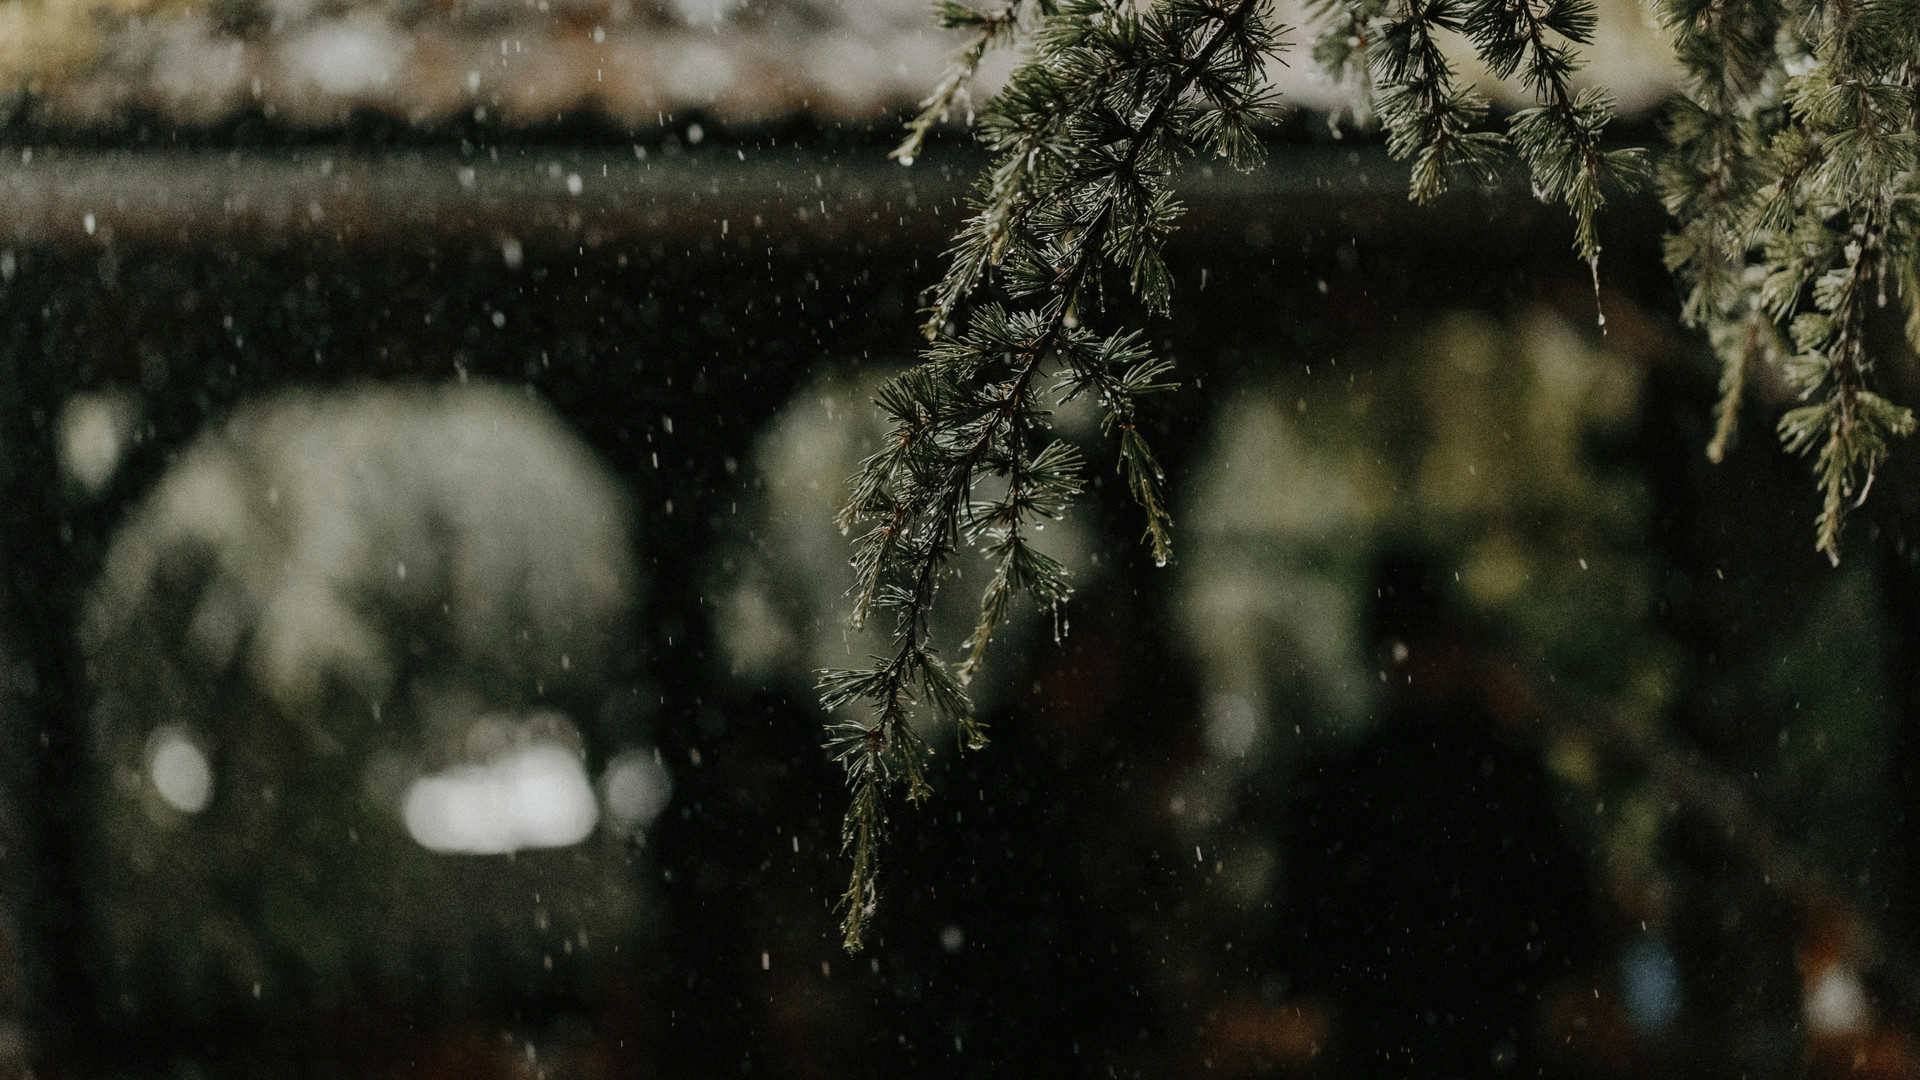 Bellon Pictures